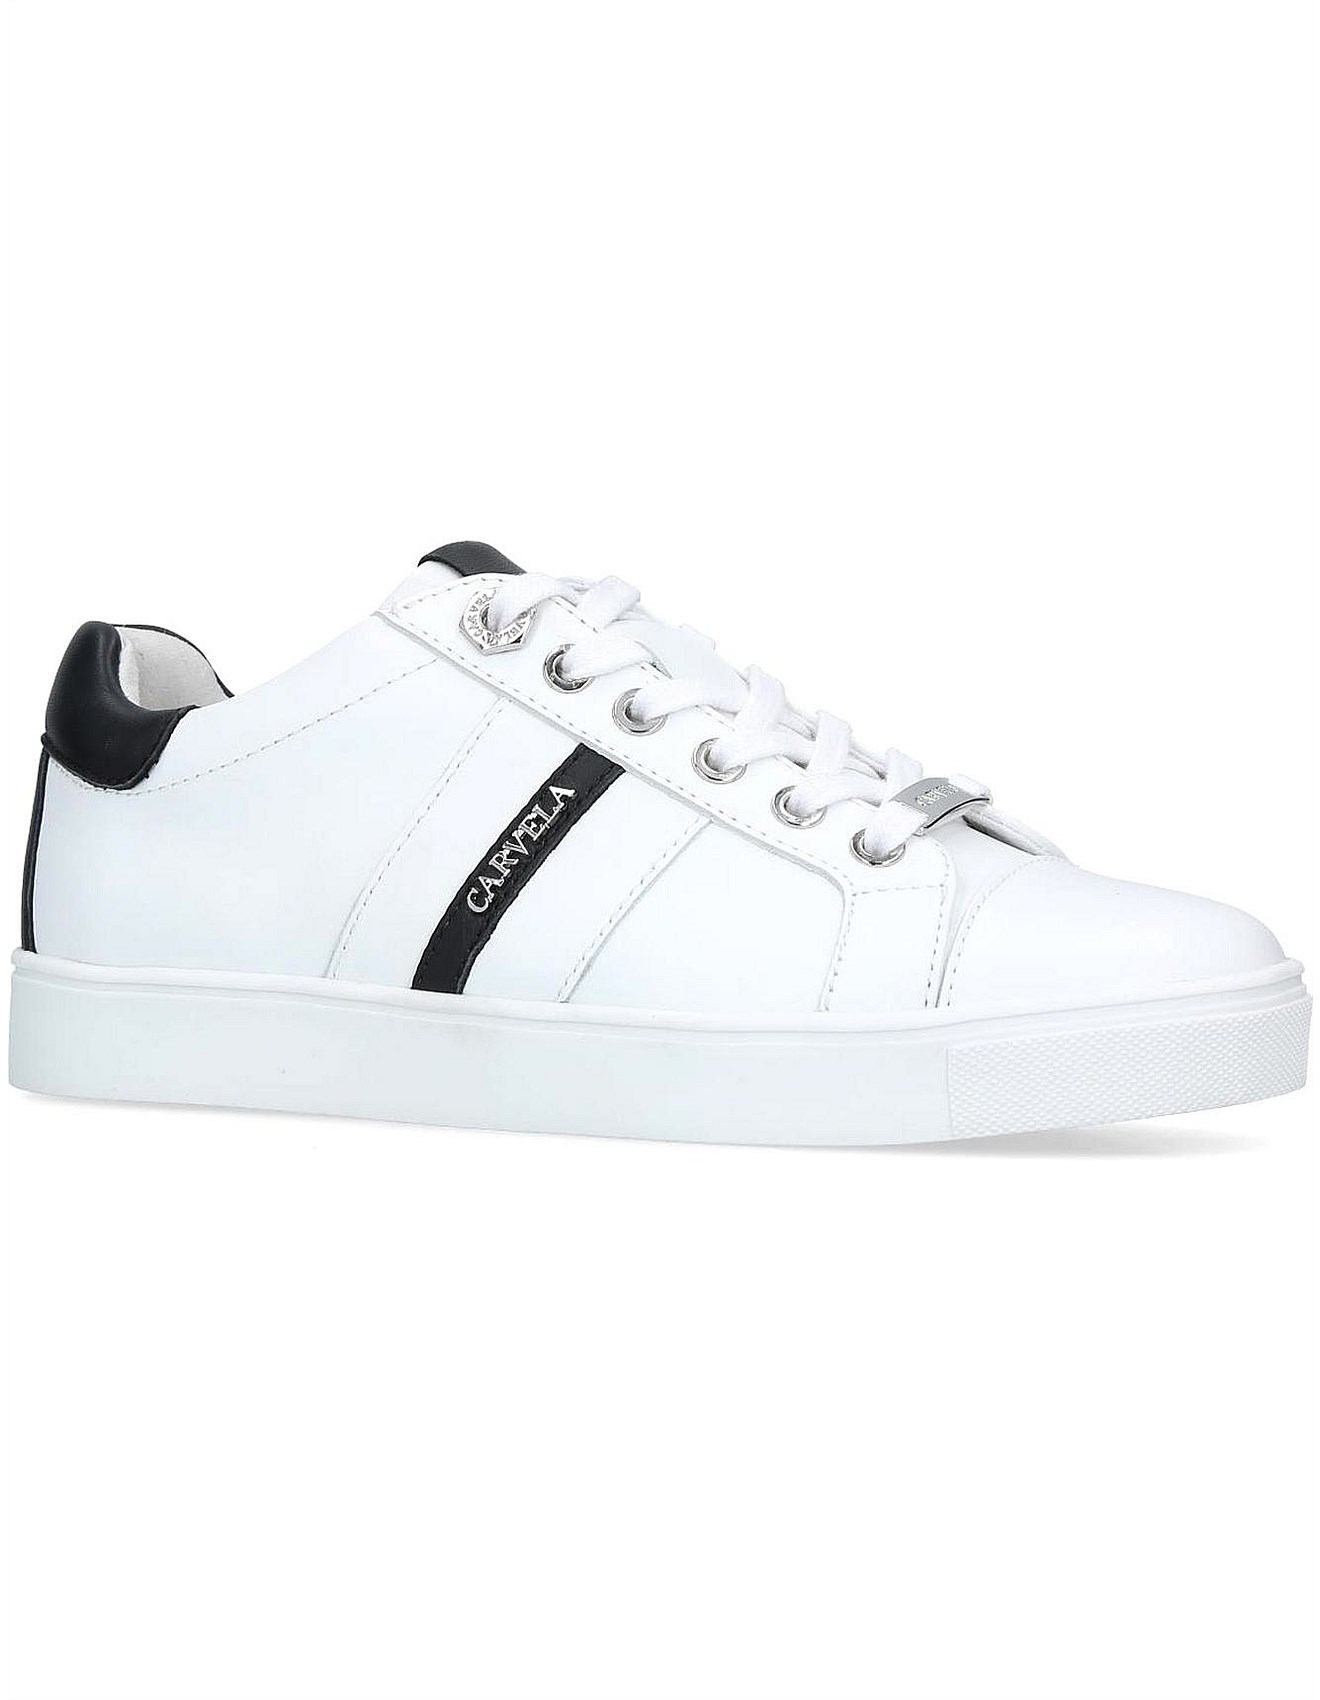 popular style largest selection of top-rated authentic CARVELA-LISA-WHITE OTH